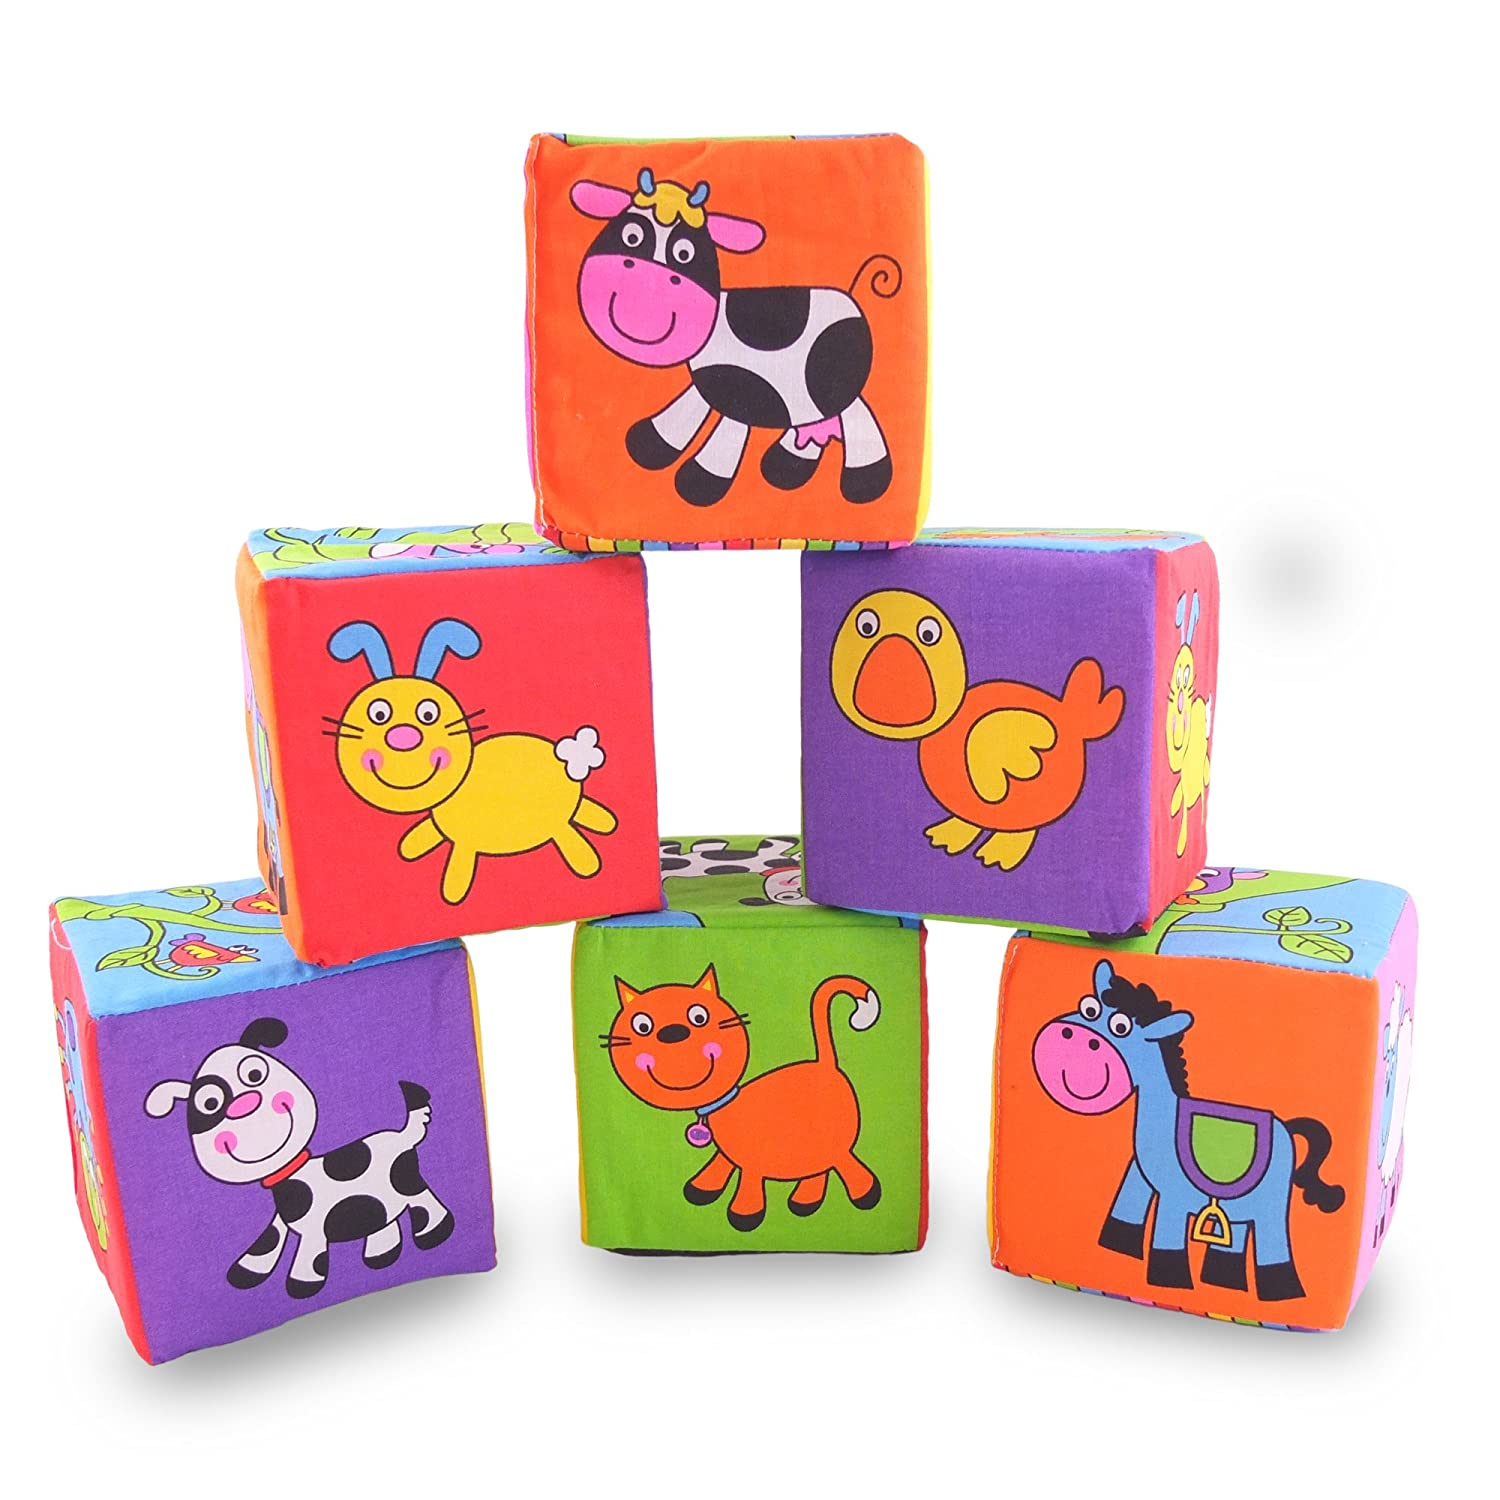 Galt Toys Soft Blocks A1085L Gift Items Gift/_Items